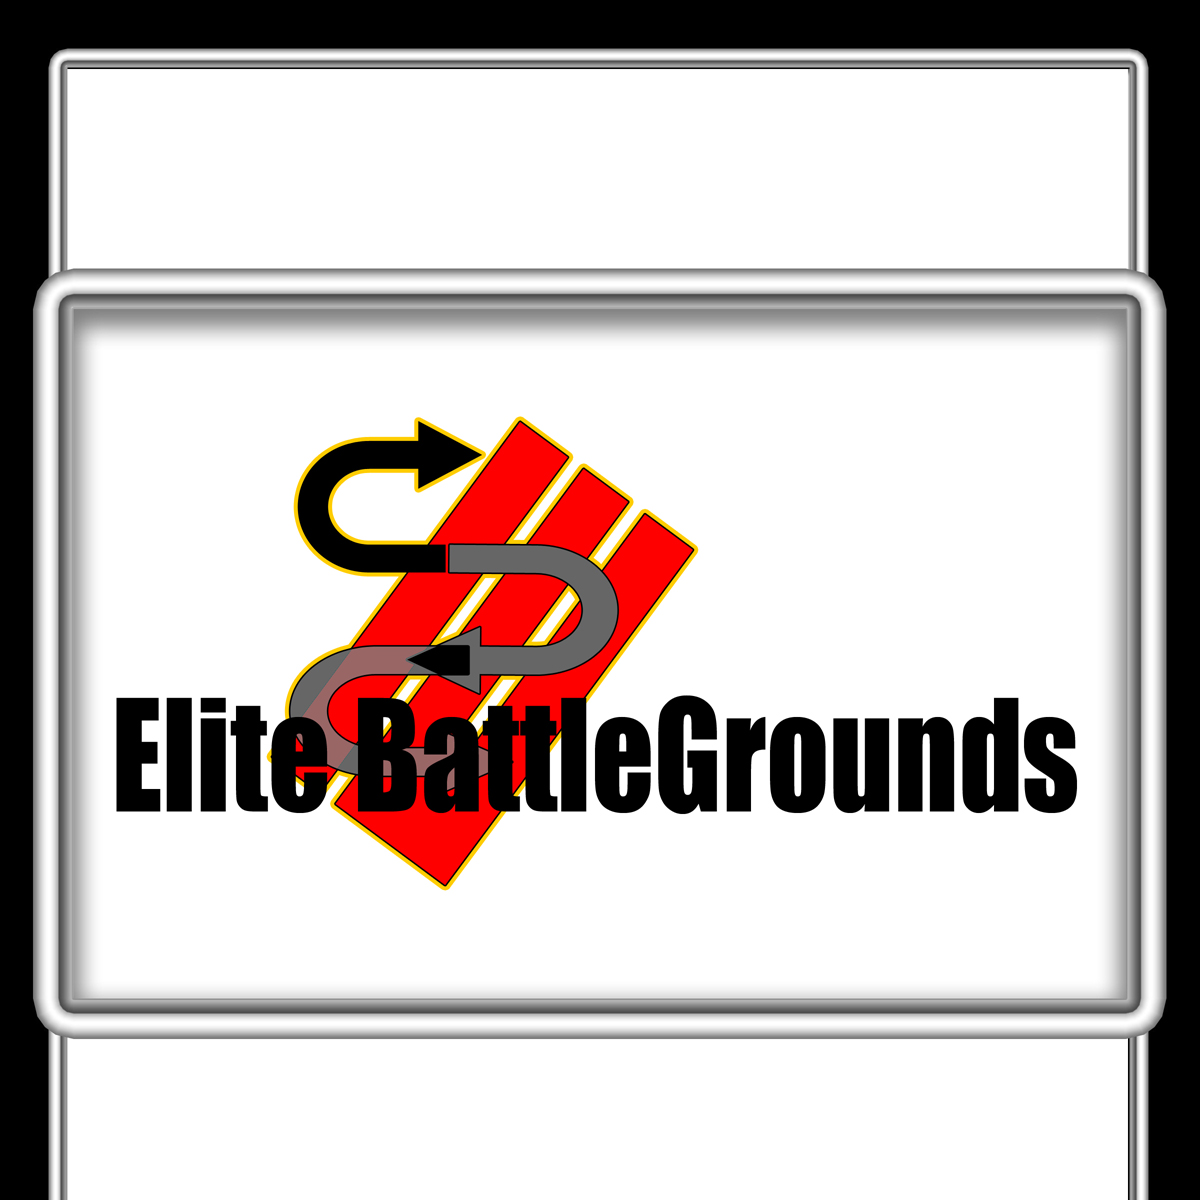 Logo Design by MITUCA ANDREI - Entry No. 11 in the Logo Design Contest Creative Logo Design for Elite Battlegrounds.